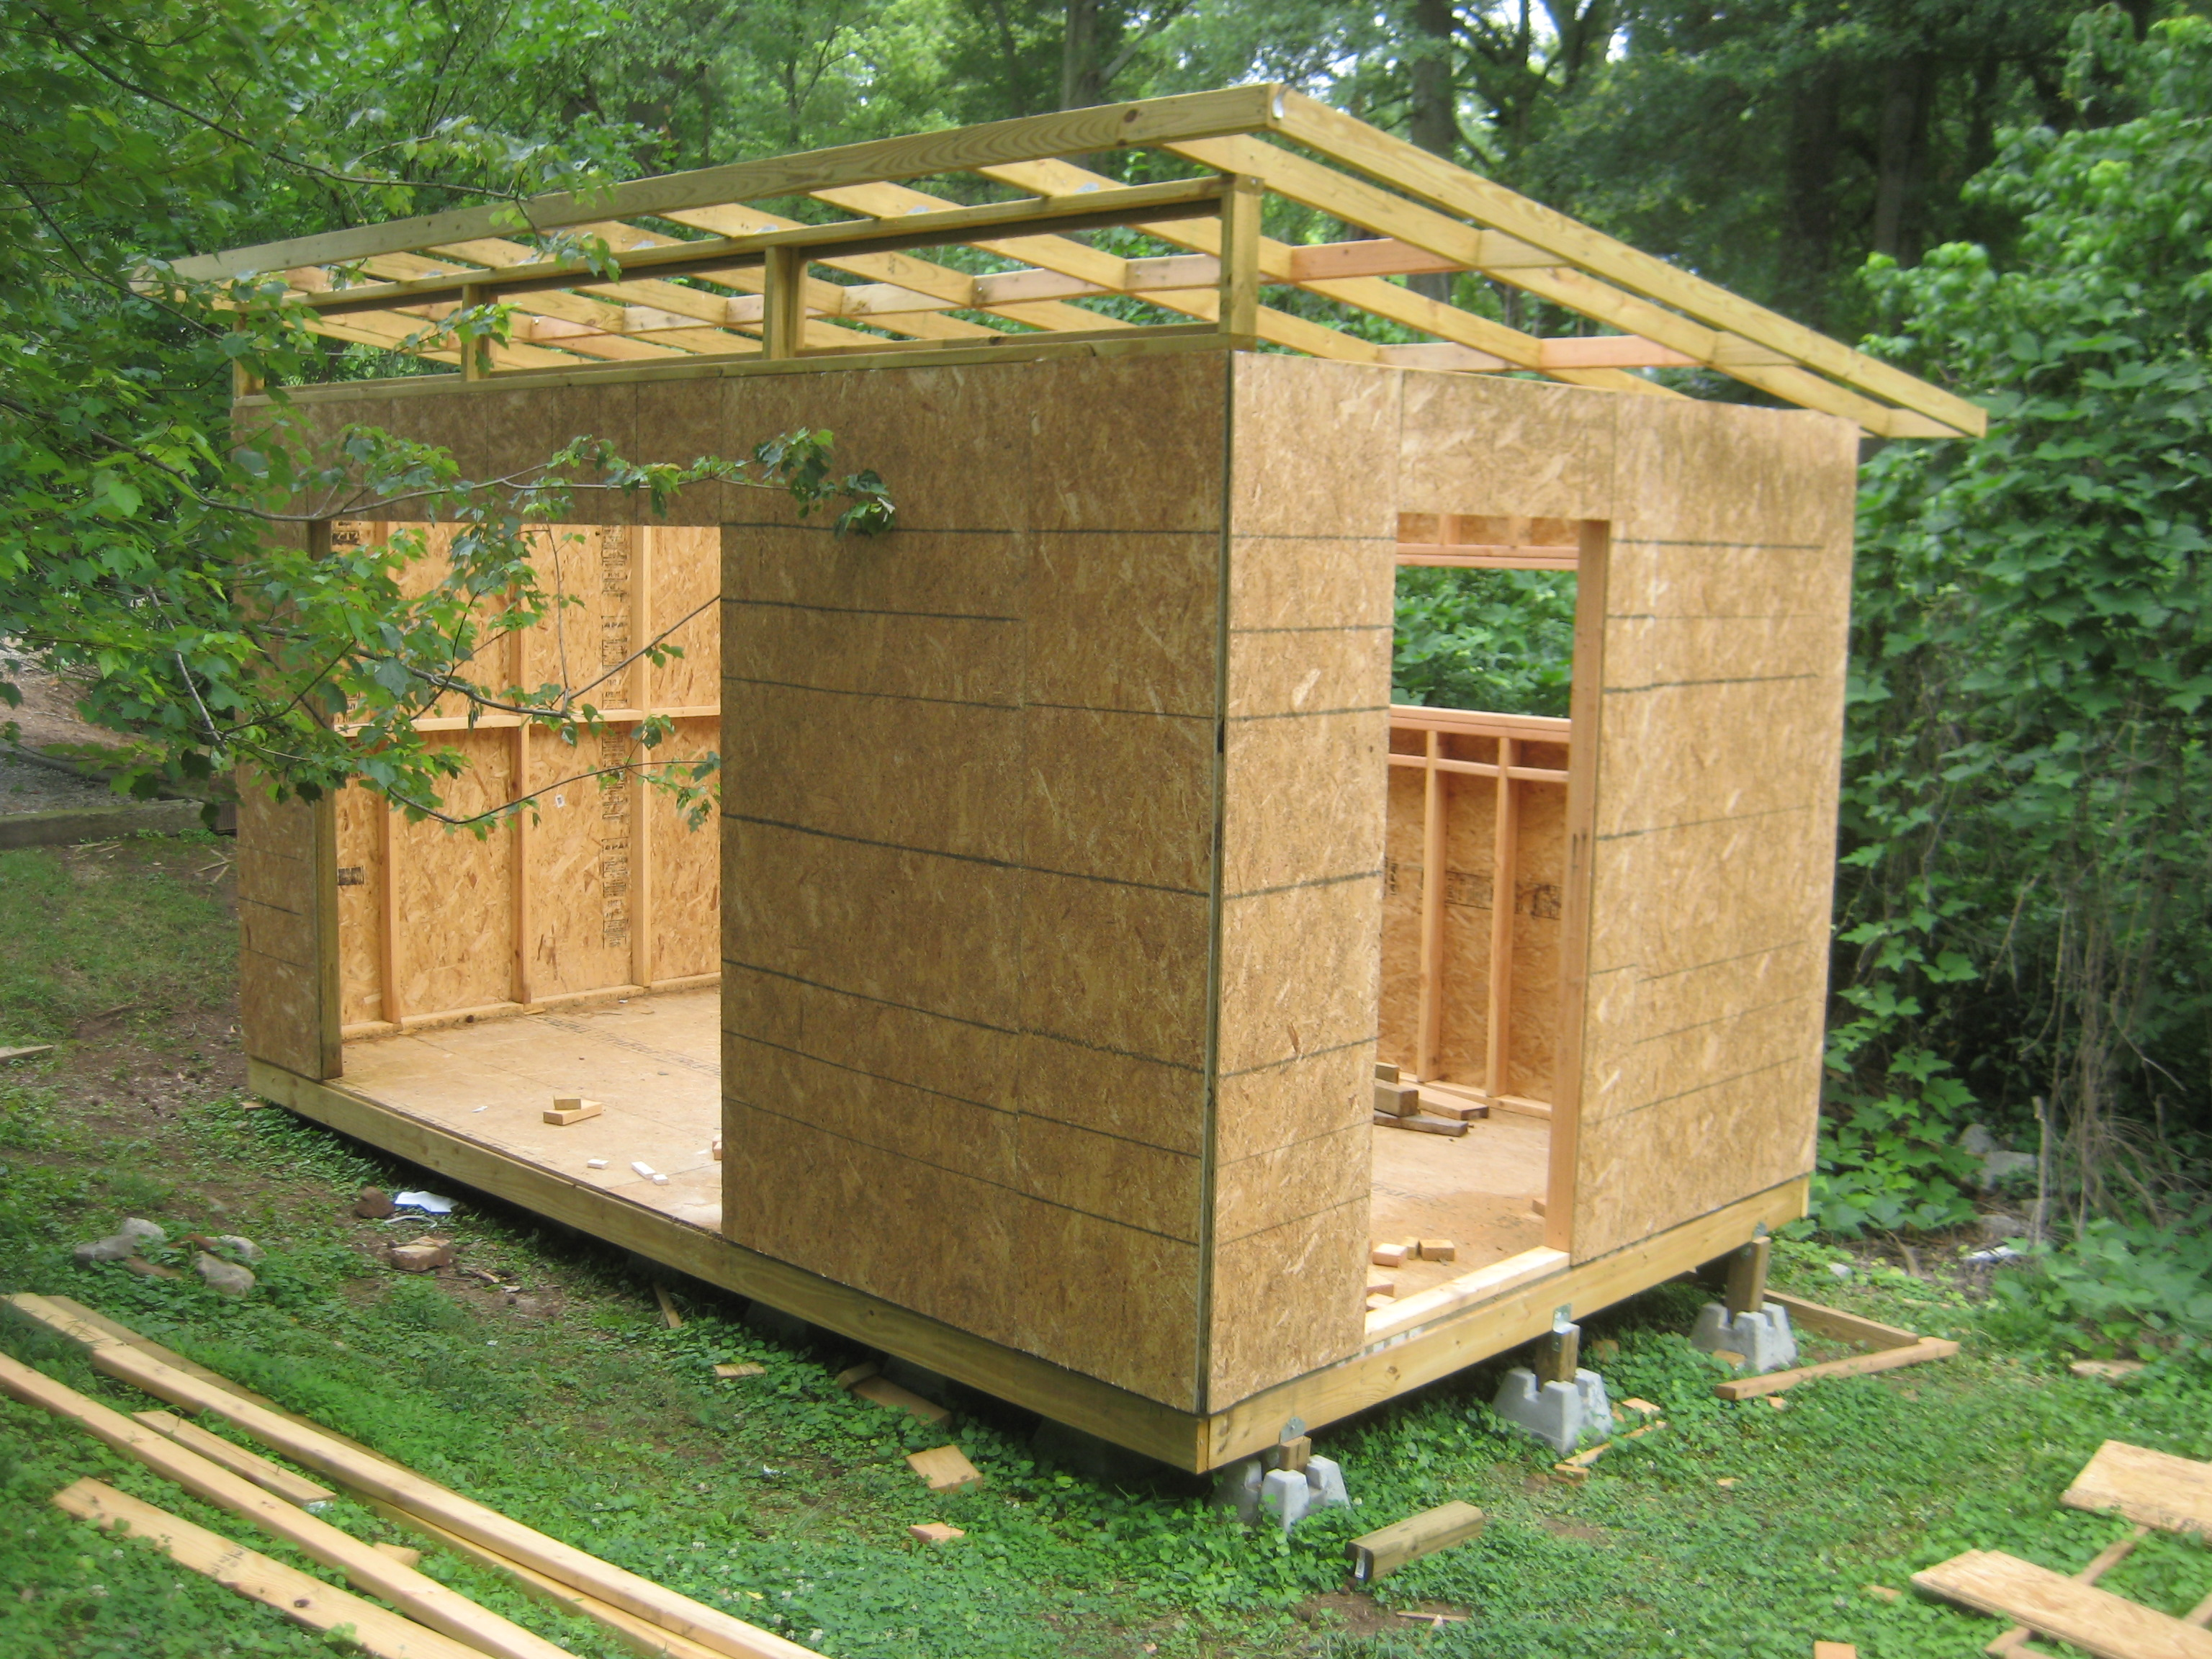 Diy modern shed project diyatlantamodern for Diy barn plans